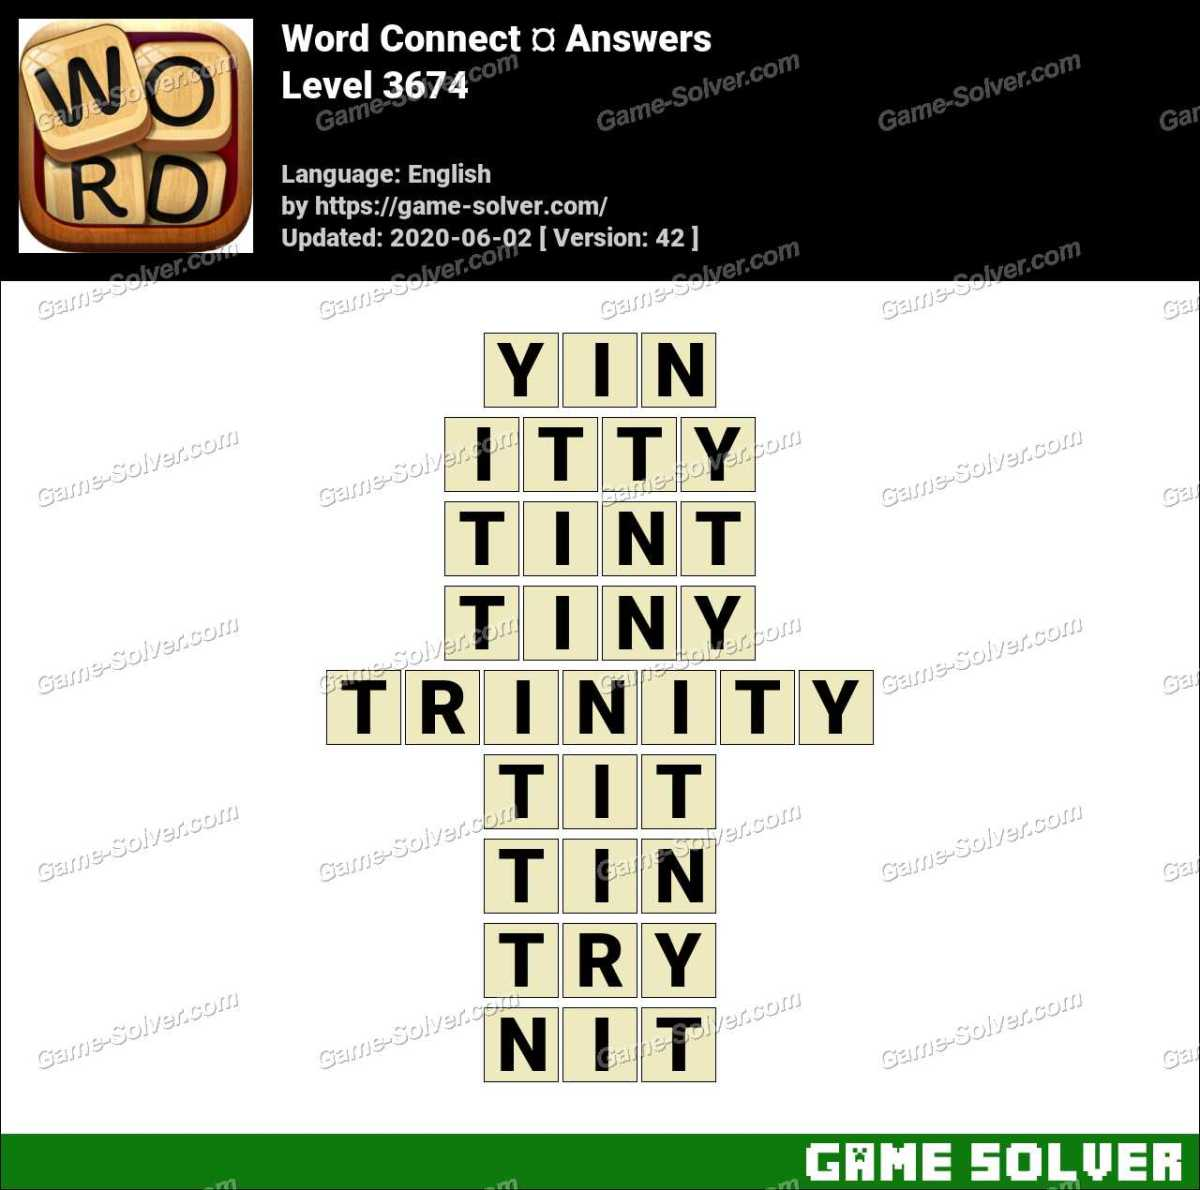 Word Connect Level 3674 Answers